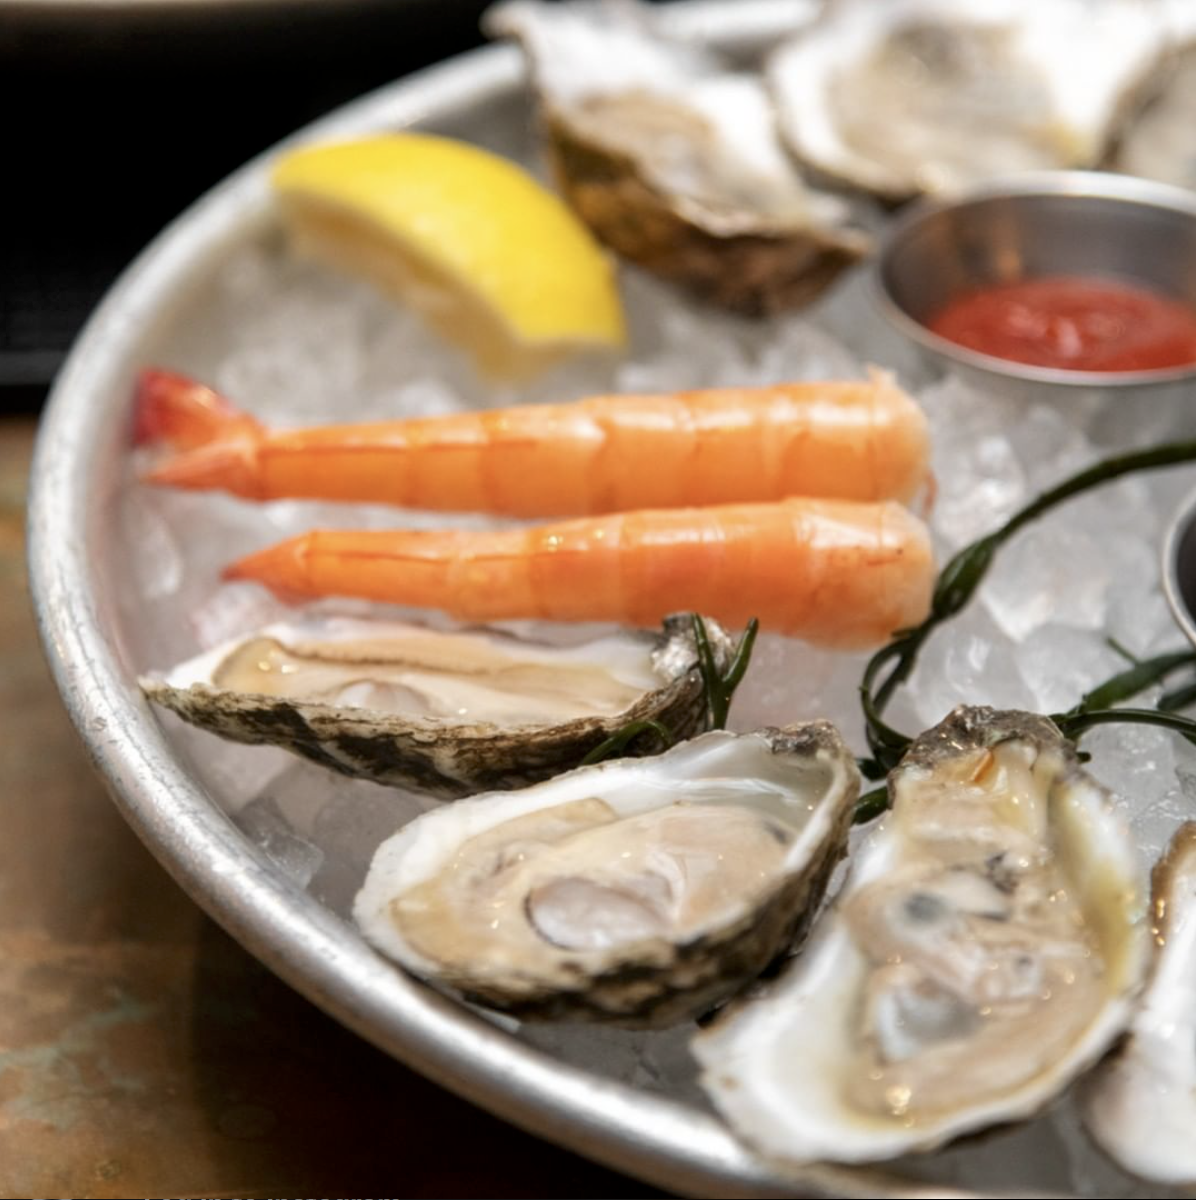 The Lowcountry outpost of the acclaimed Virginia-based oyster farm. Come for the raw bar and stay for Chef Kevin Kelly's much lauded light, bright and brazen menu.